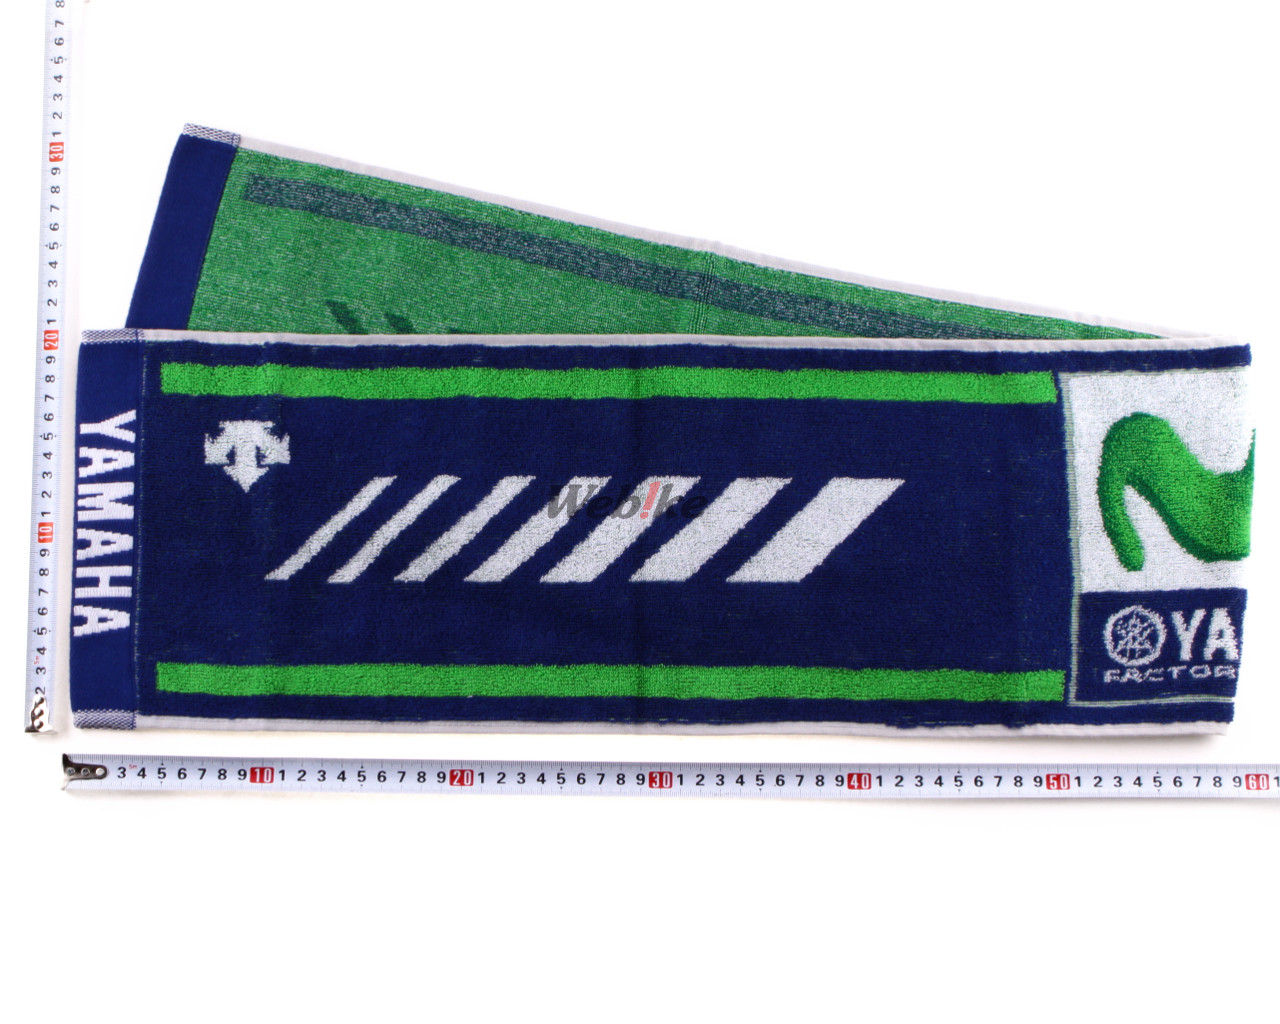 【YAMAHA】MotoGP movistar Team Towel 廠對毛巾 - 「Webike-摩托百貨」